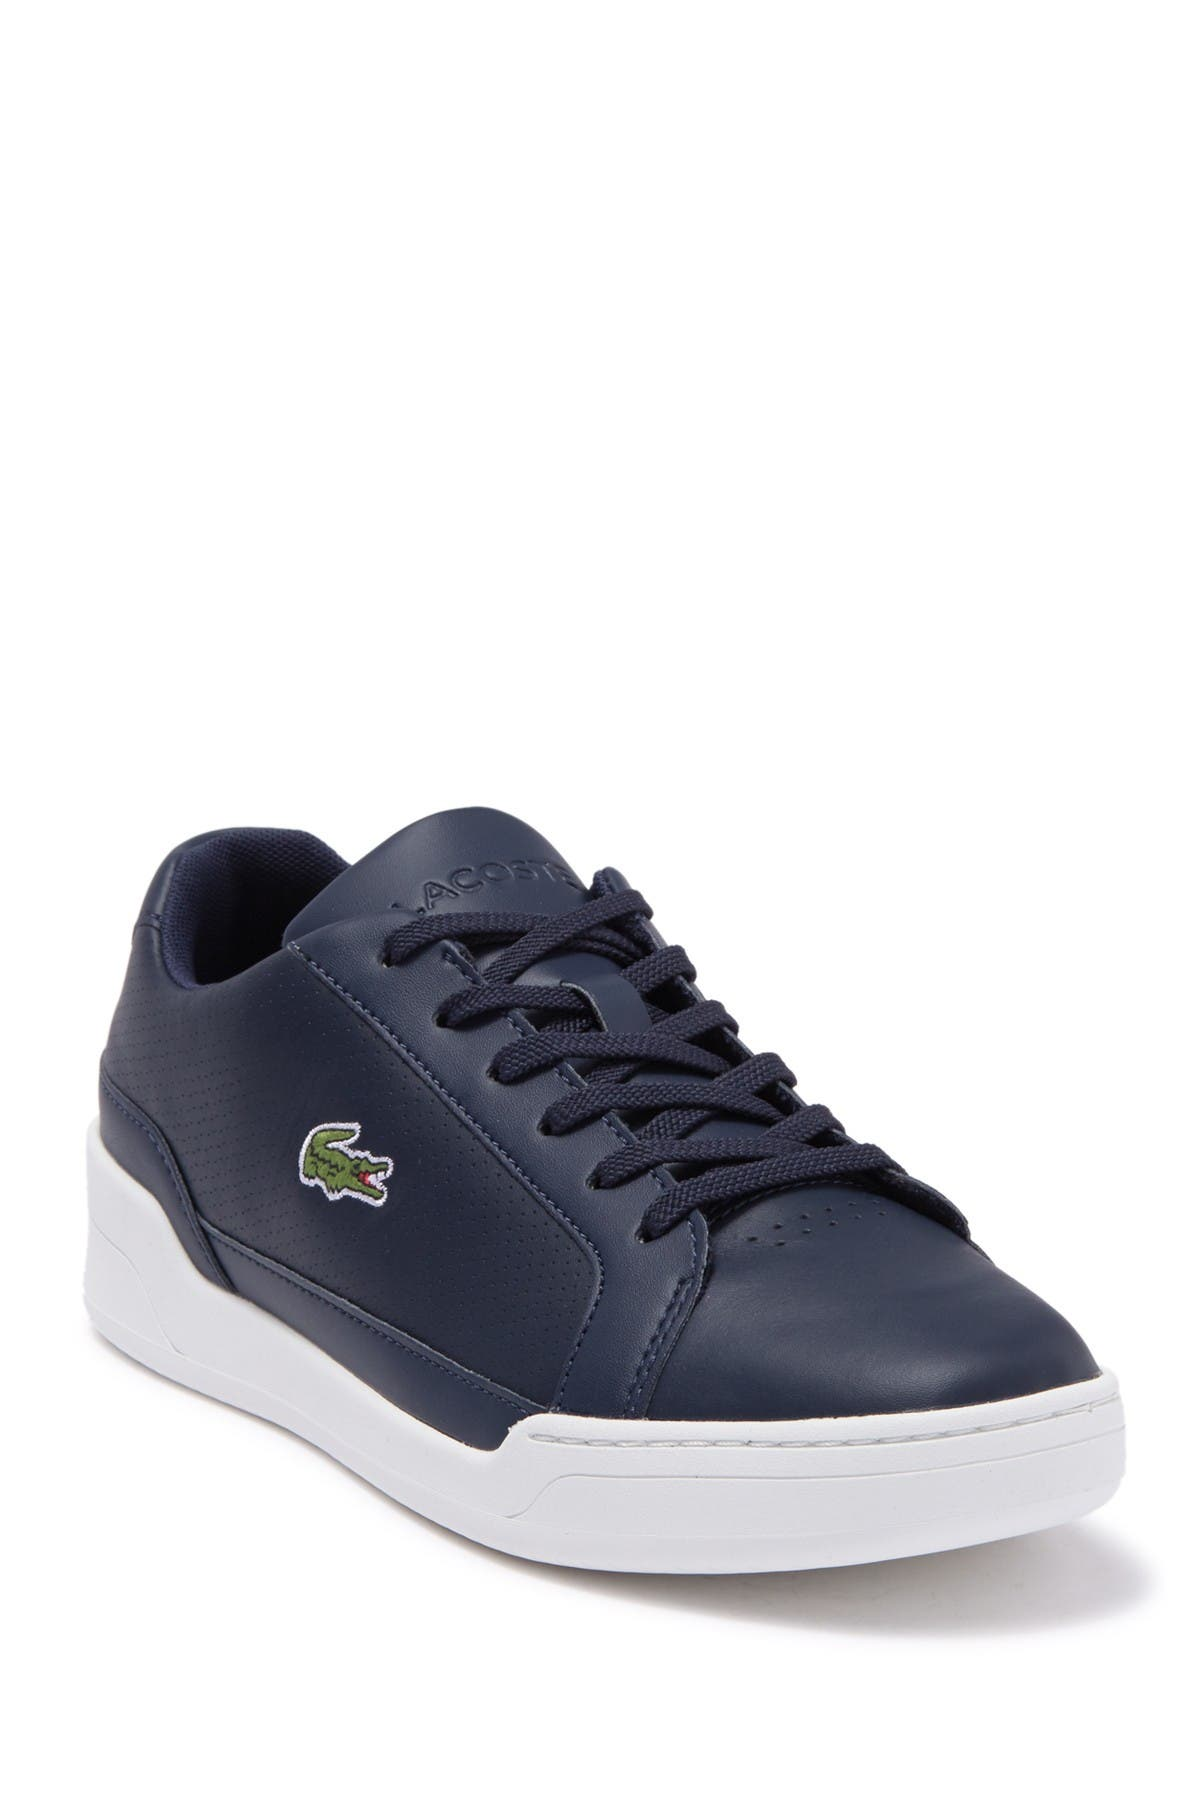 Image of Lacoste Challenge Perforated Sneaker